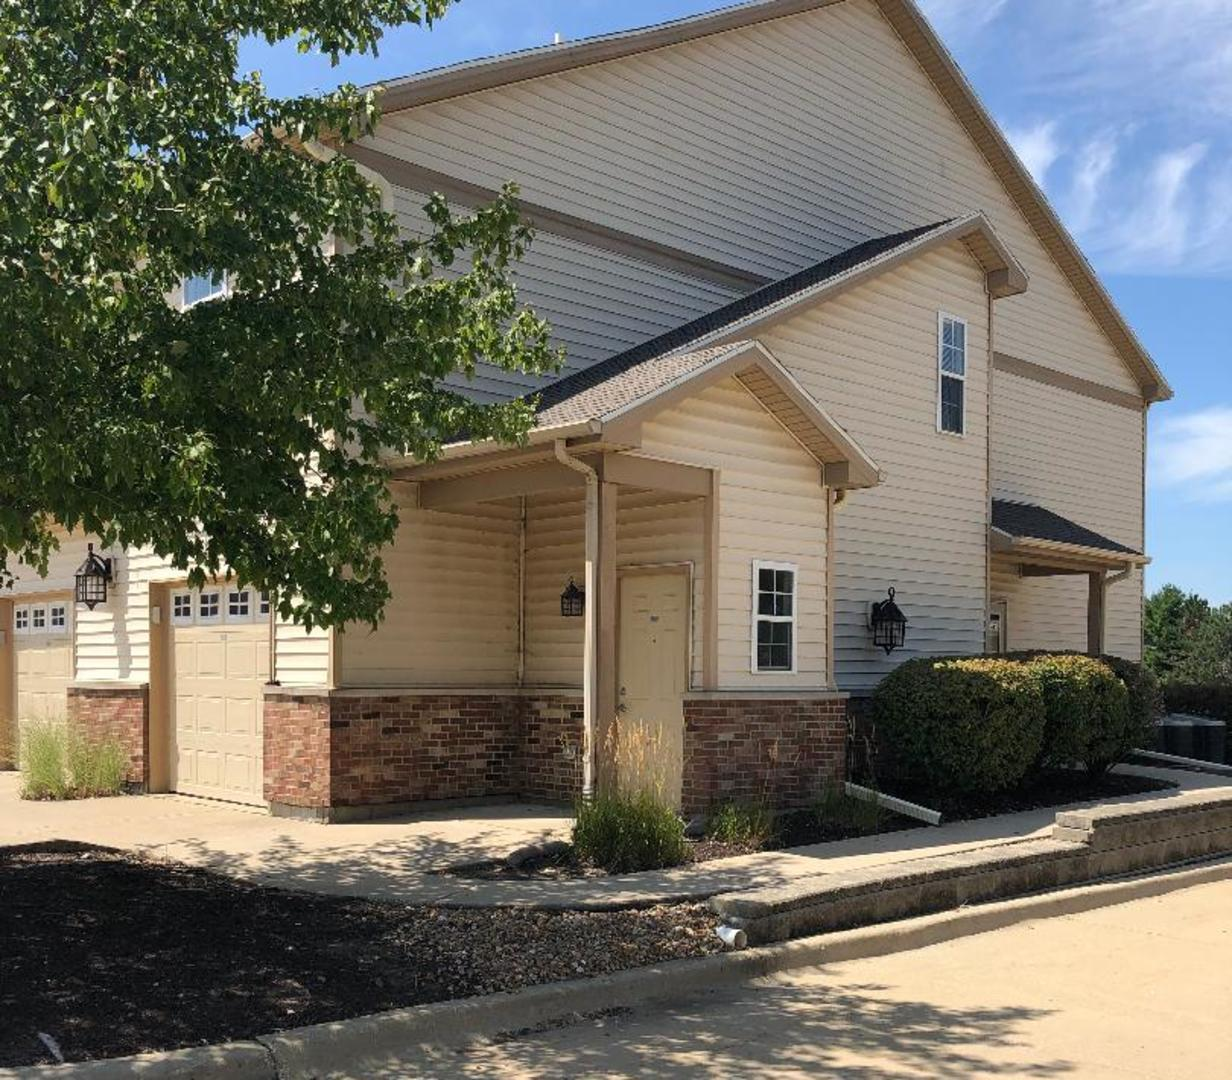 3702 THORNHILL 3702, Champaign, Illinois, 61822